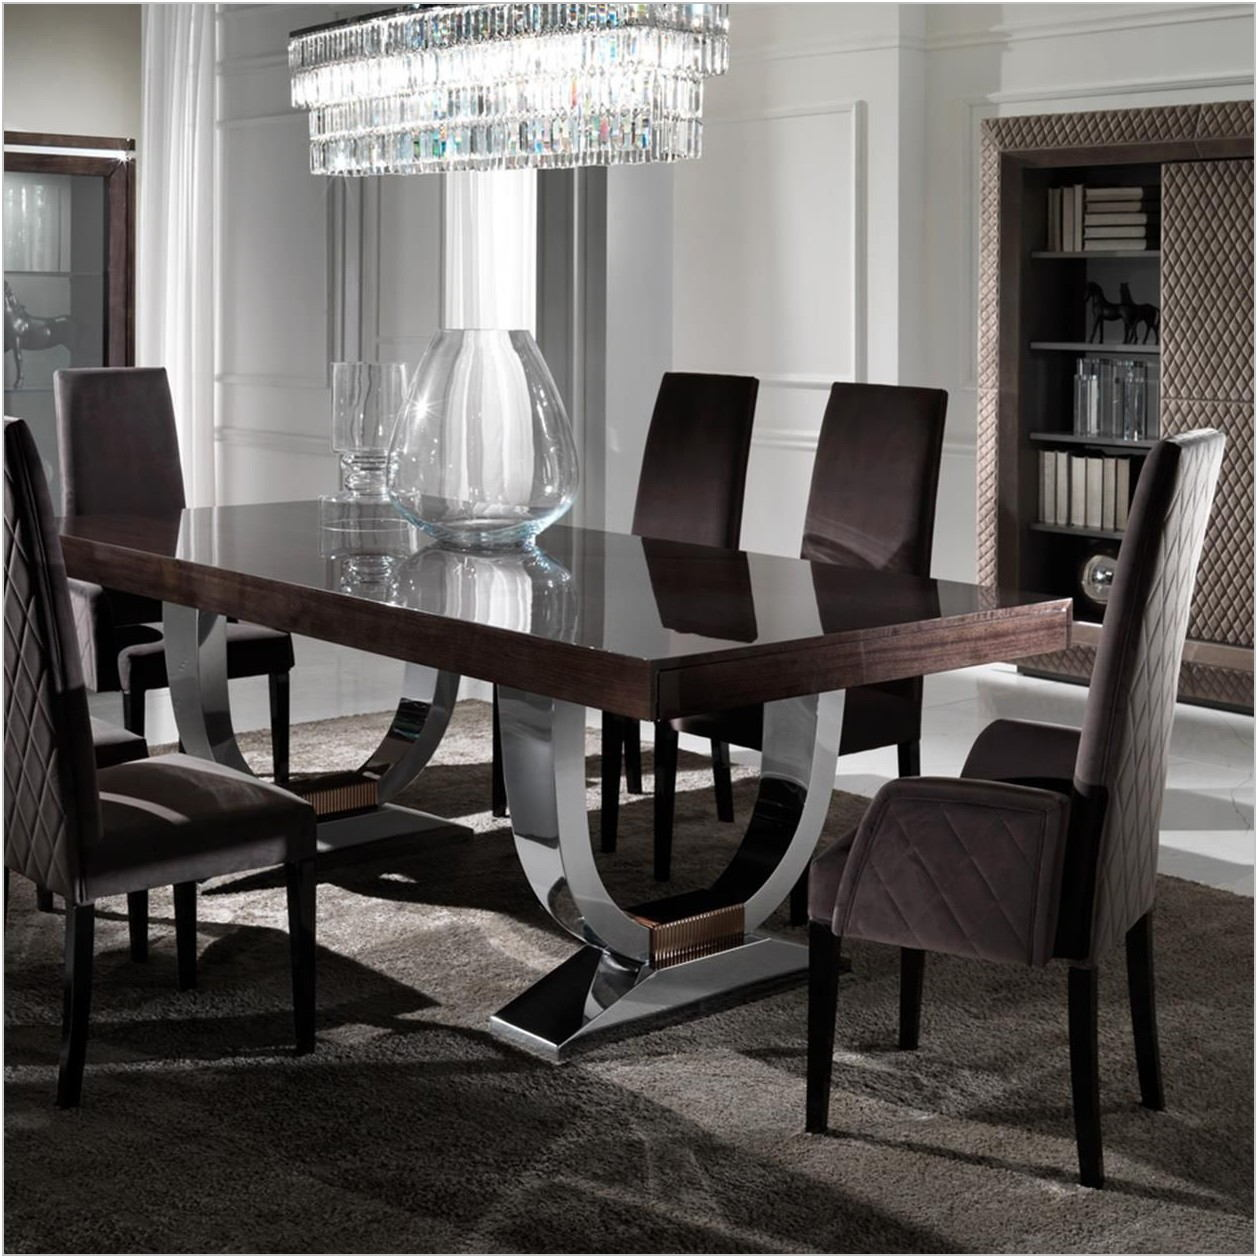 Luxury Italian Dining Room Sets